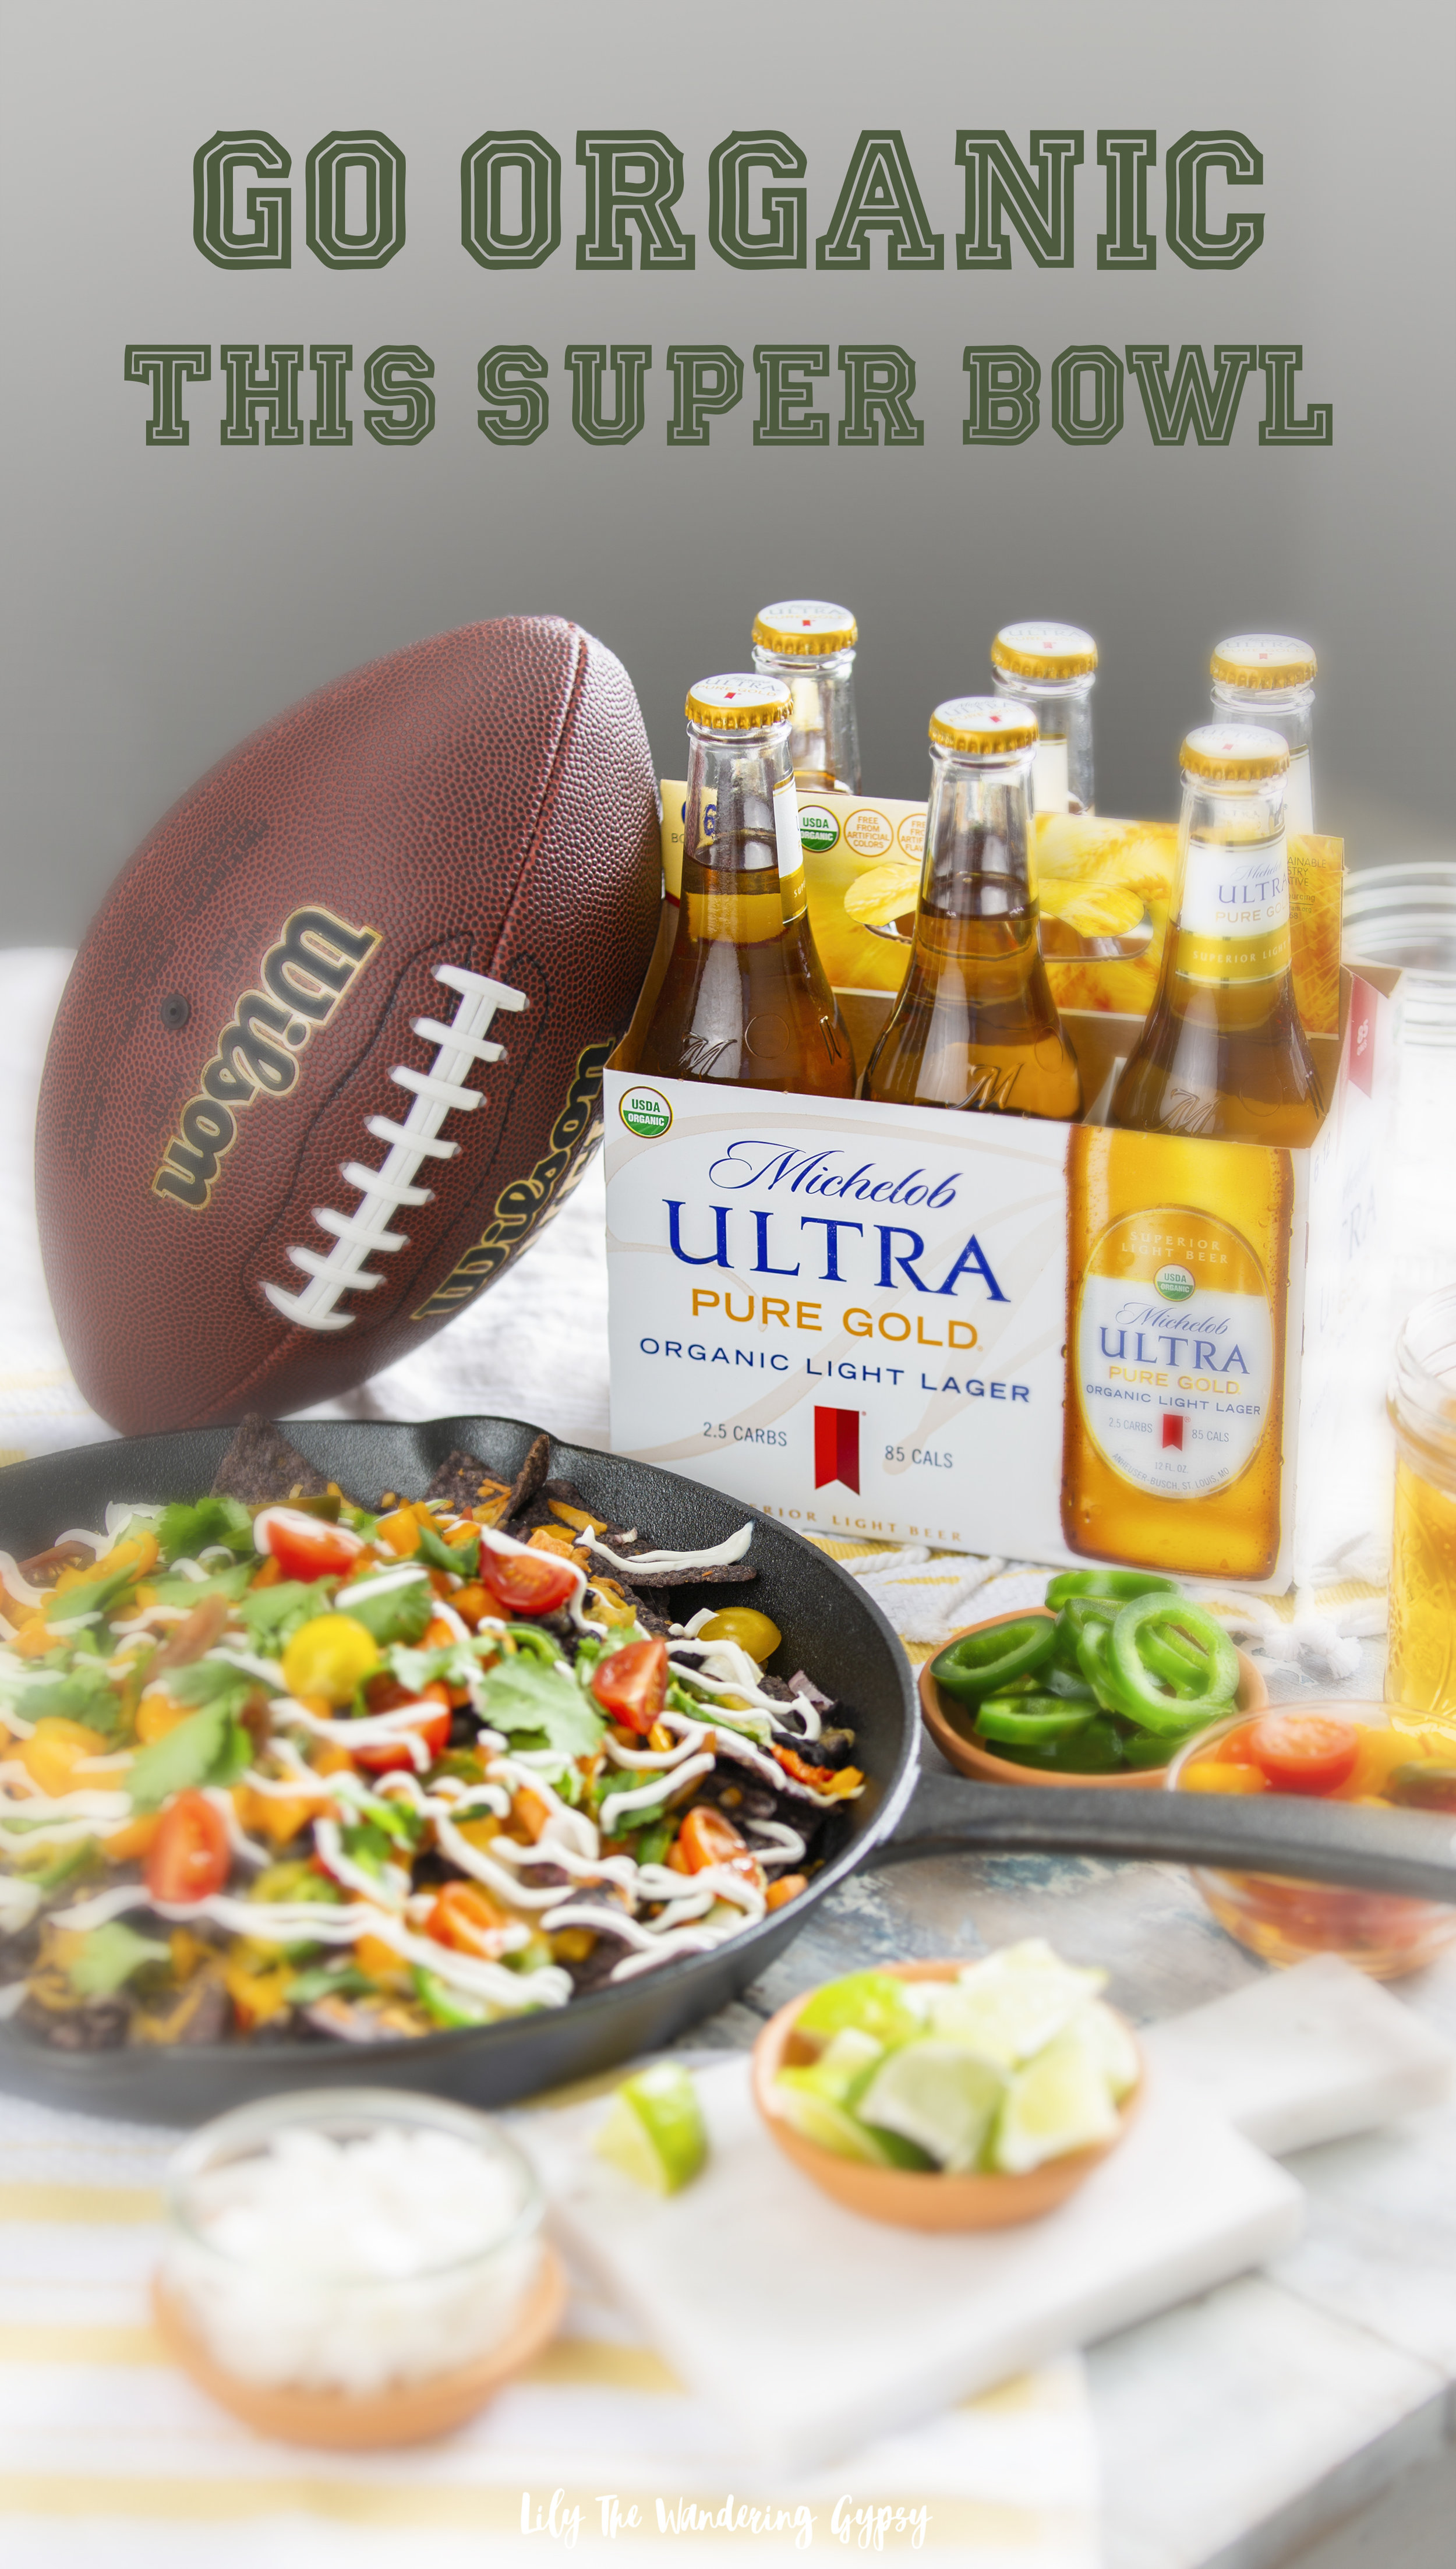 Go #organic this #SuperBowl - skillet nachos recipe